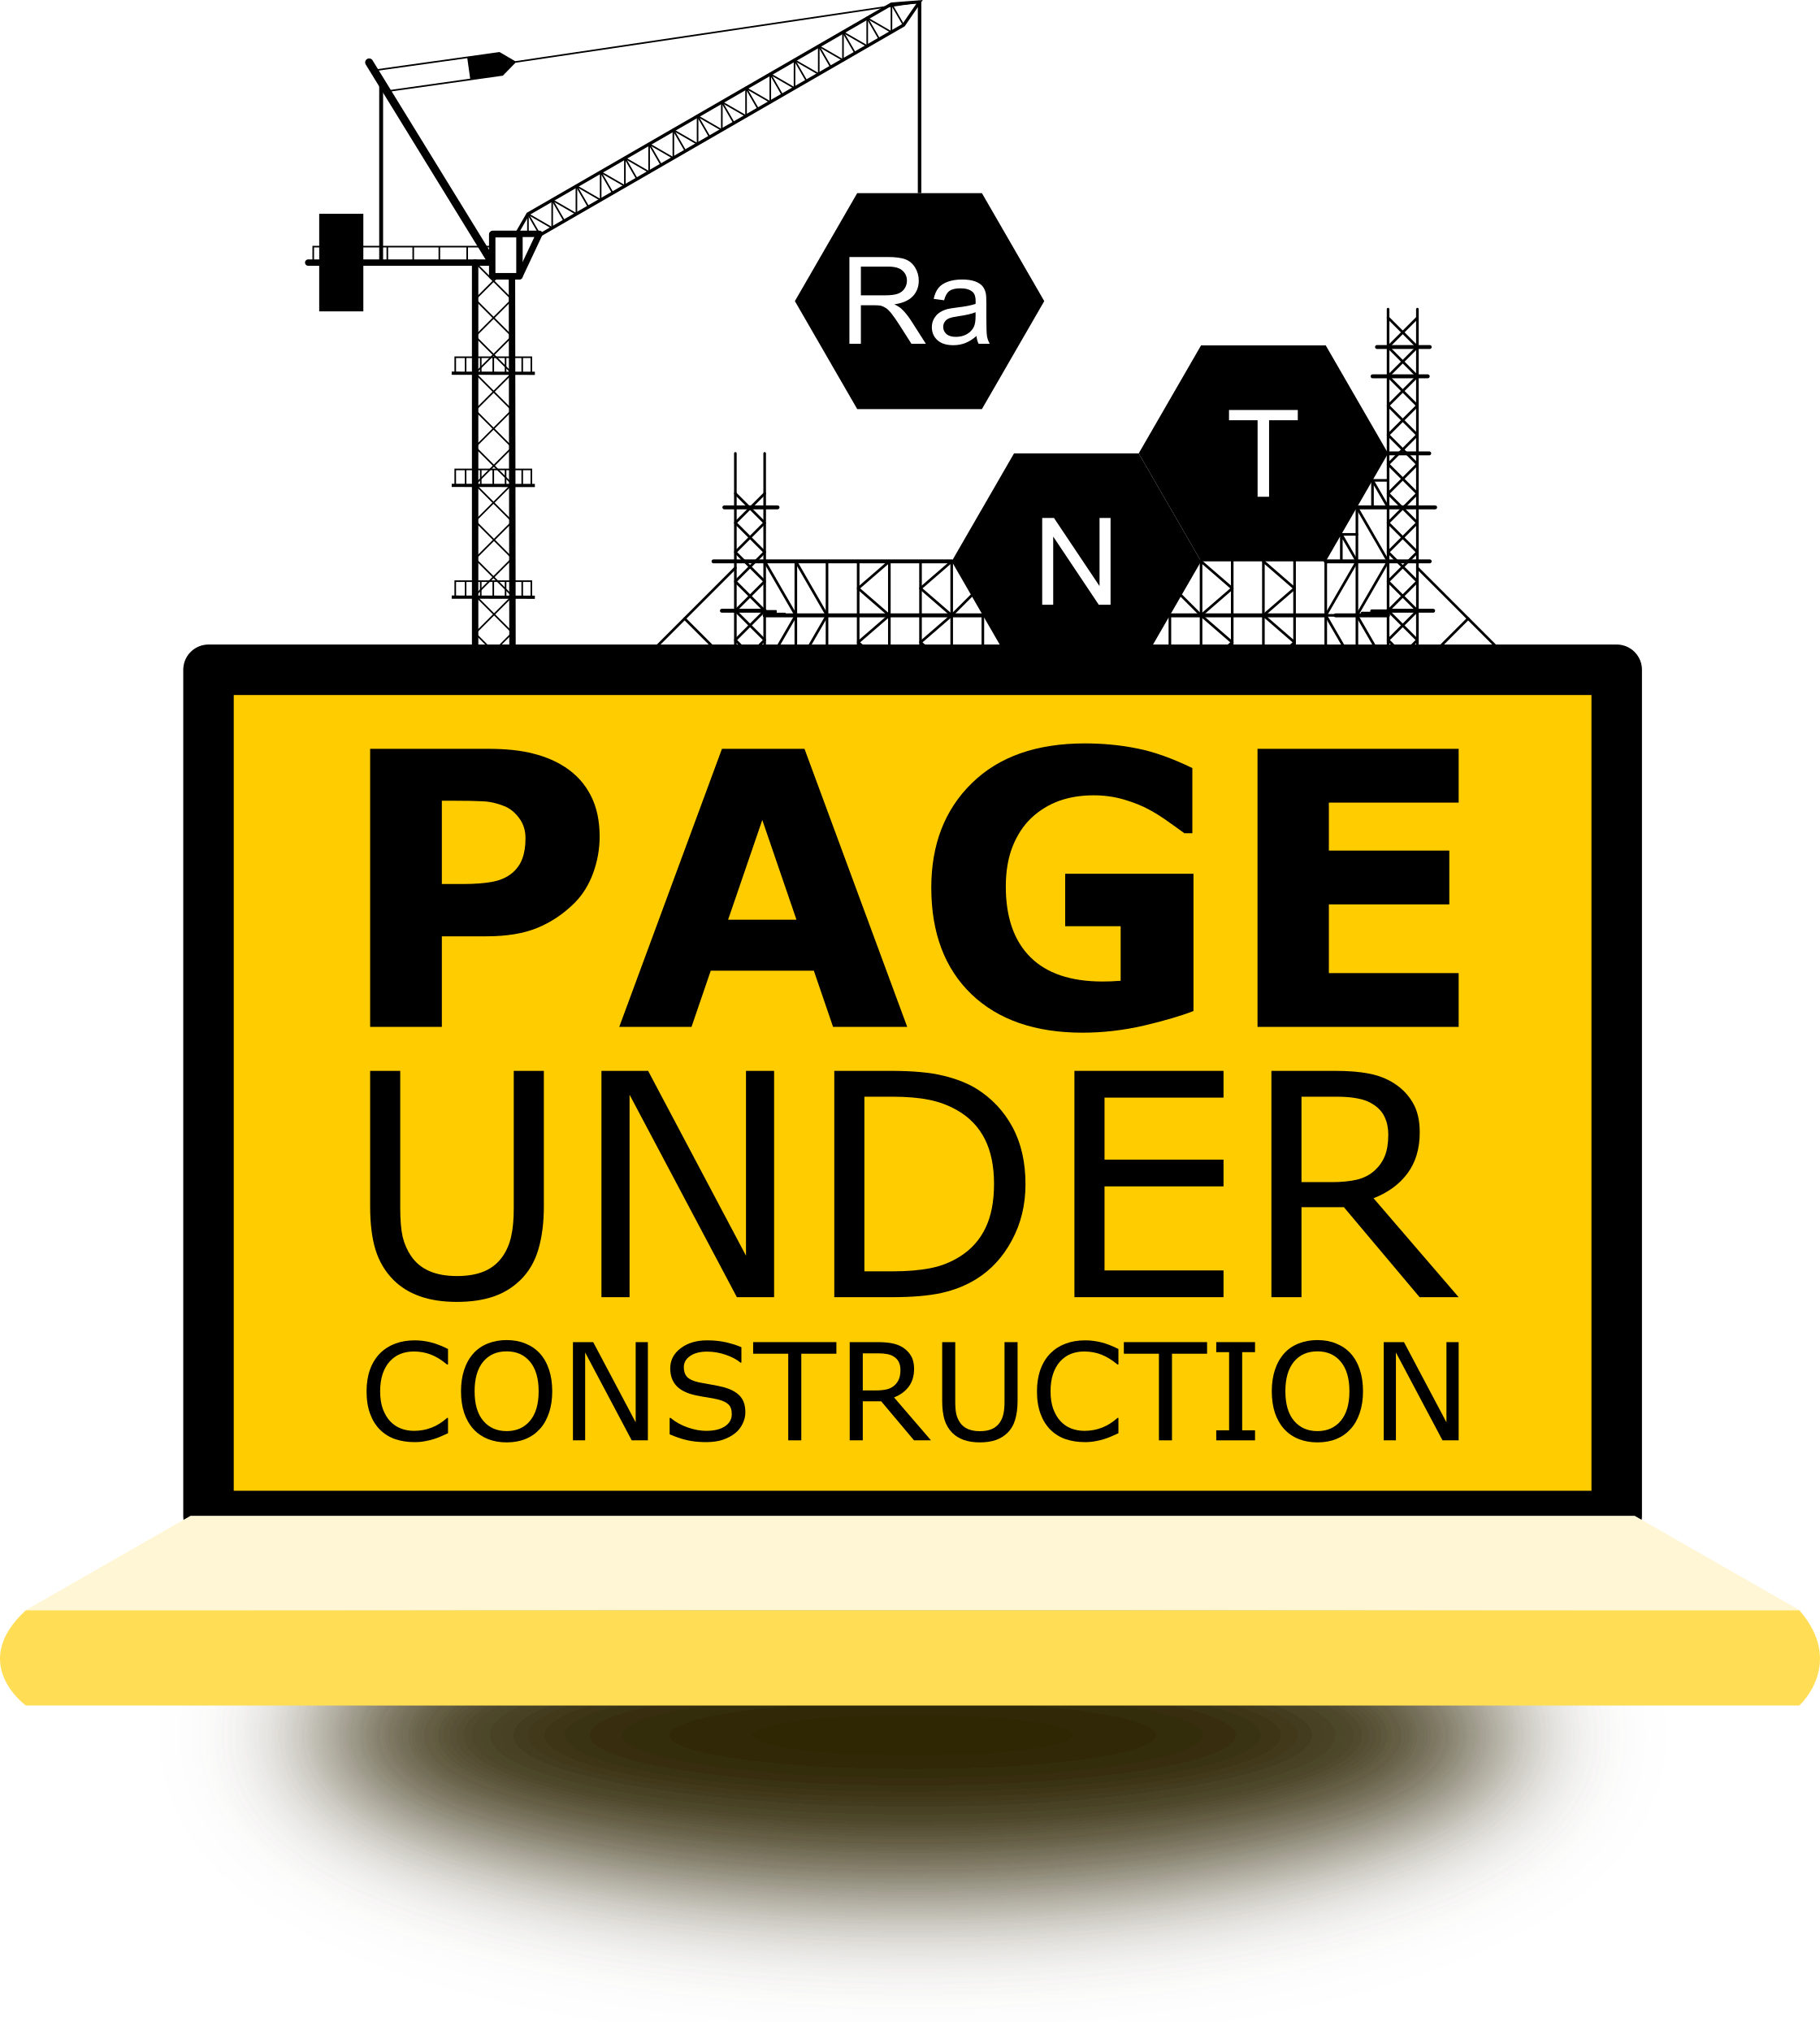 Page Under Construction Graphic - This Raman Nanotheranostics (RaNT) webpage is undergoing maintenance.